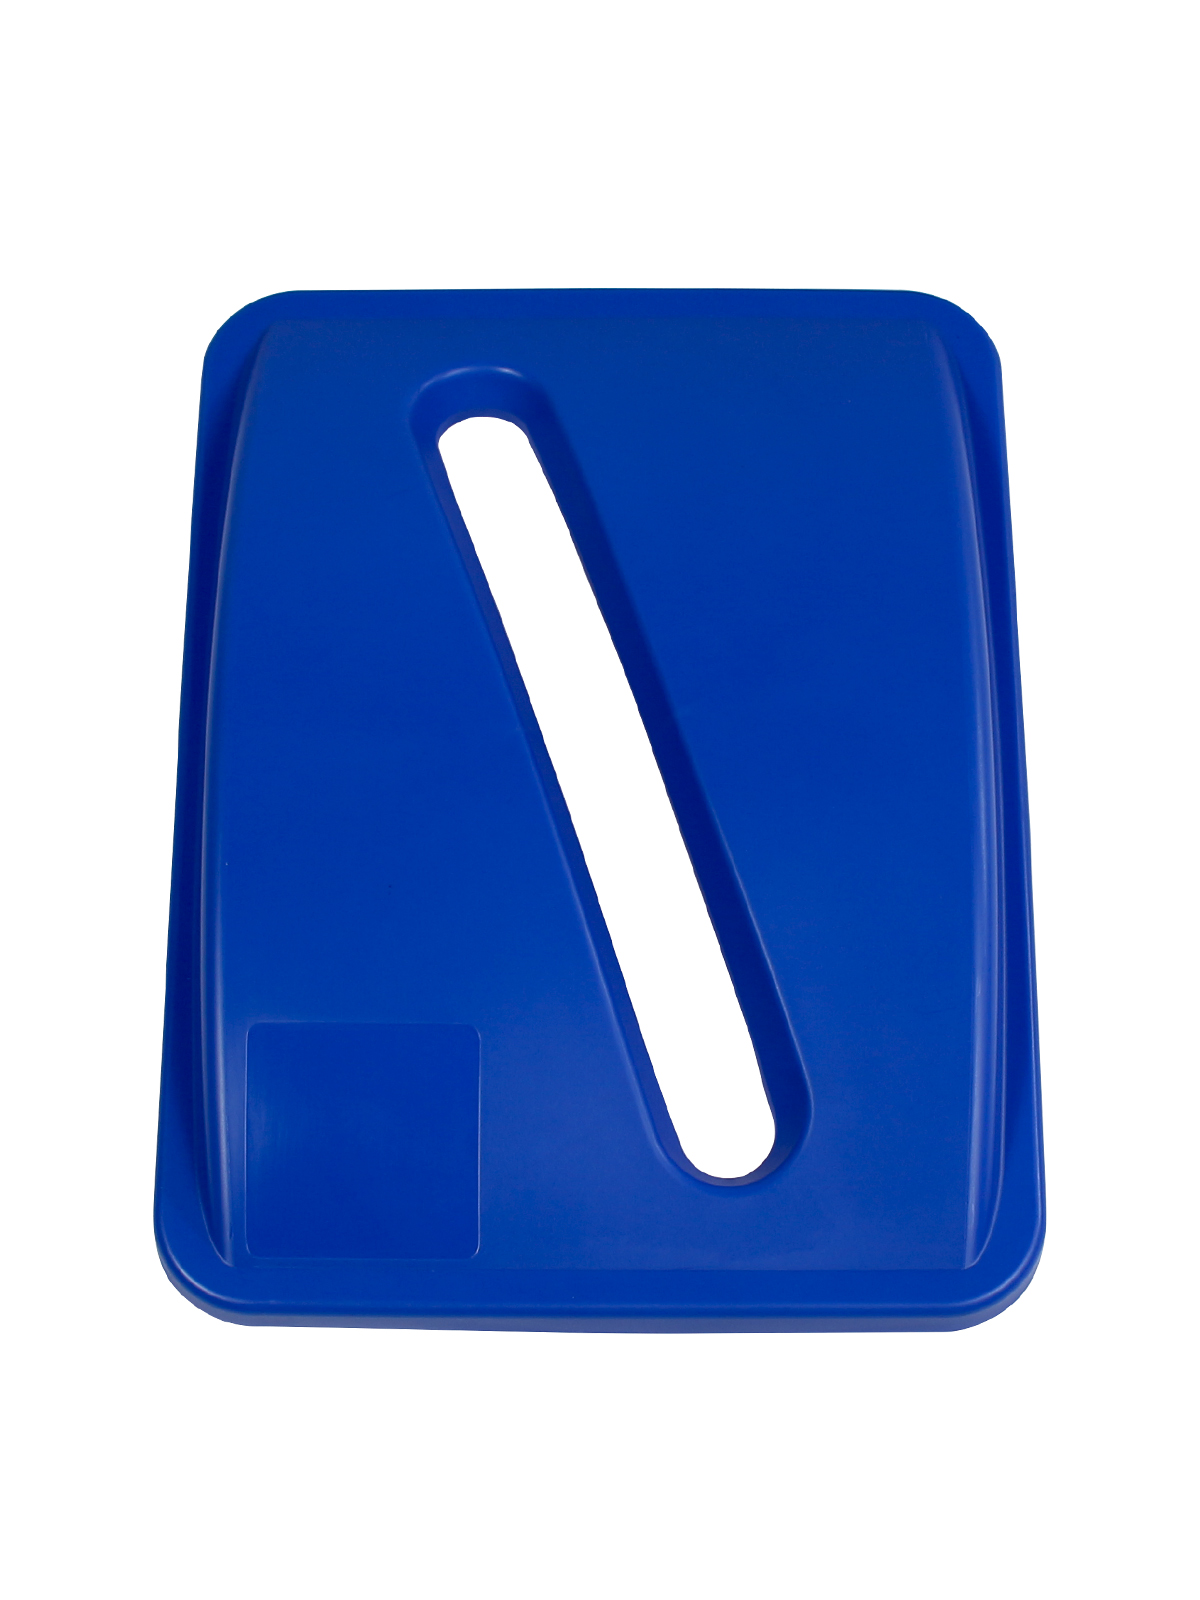 WASTE WATCHER XL - Lid - Slot - Royal Blue